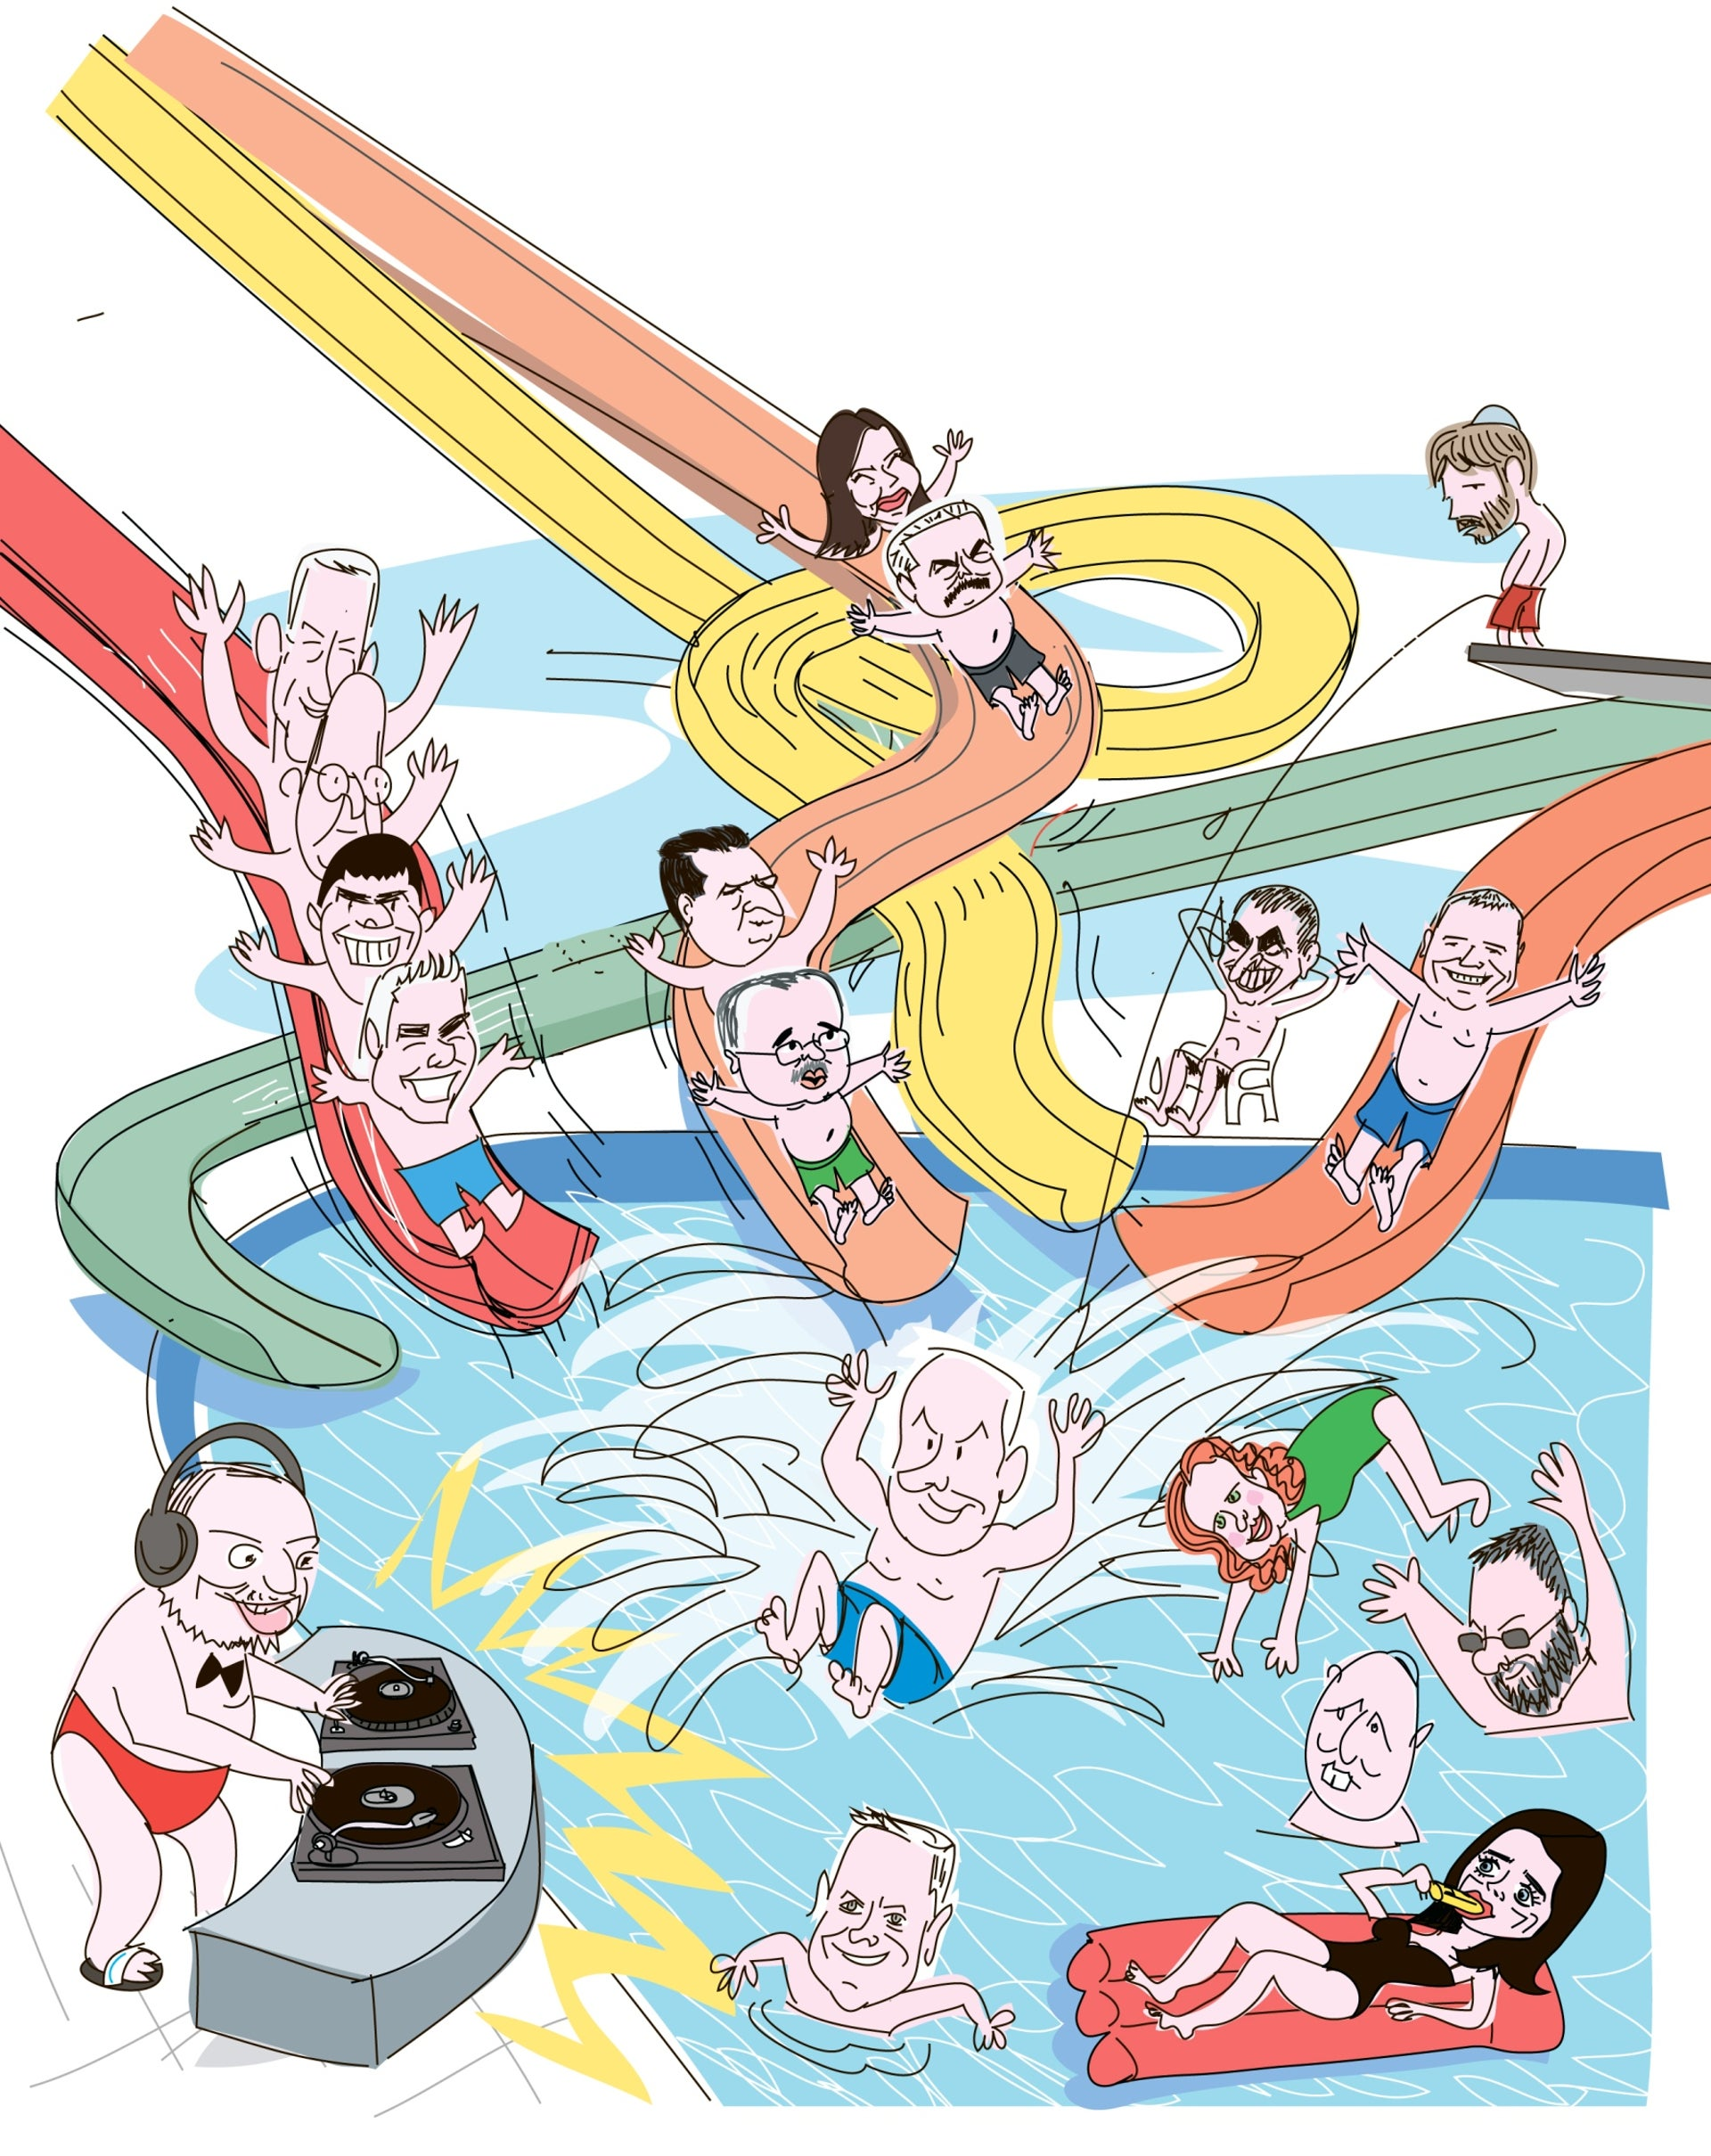 Illustration: Israeli politicians at a water park